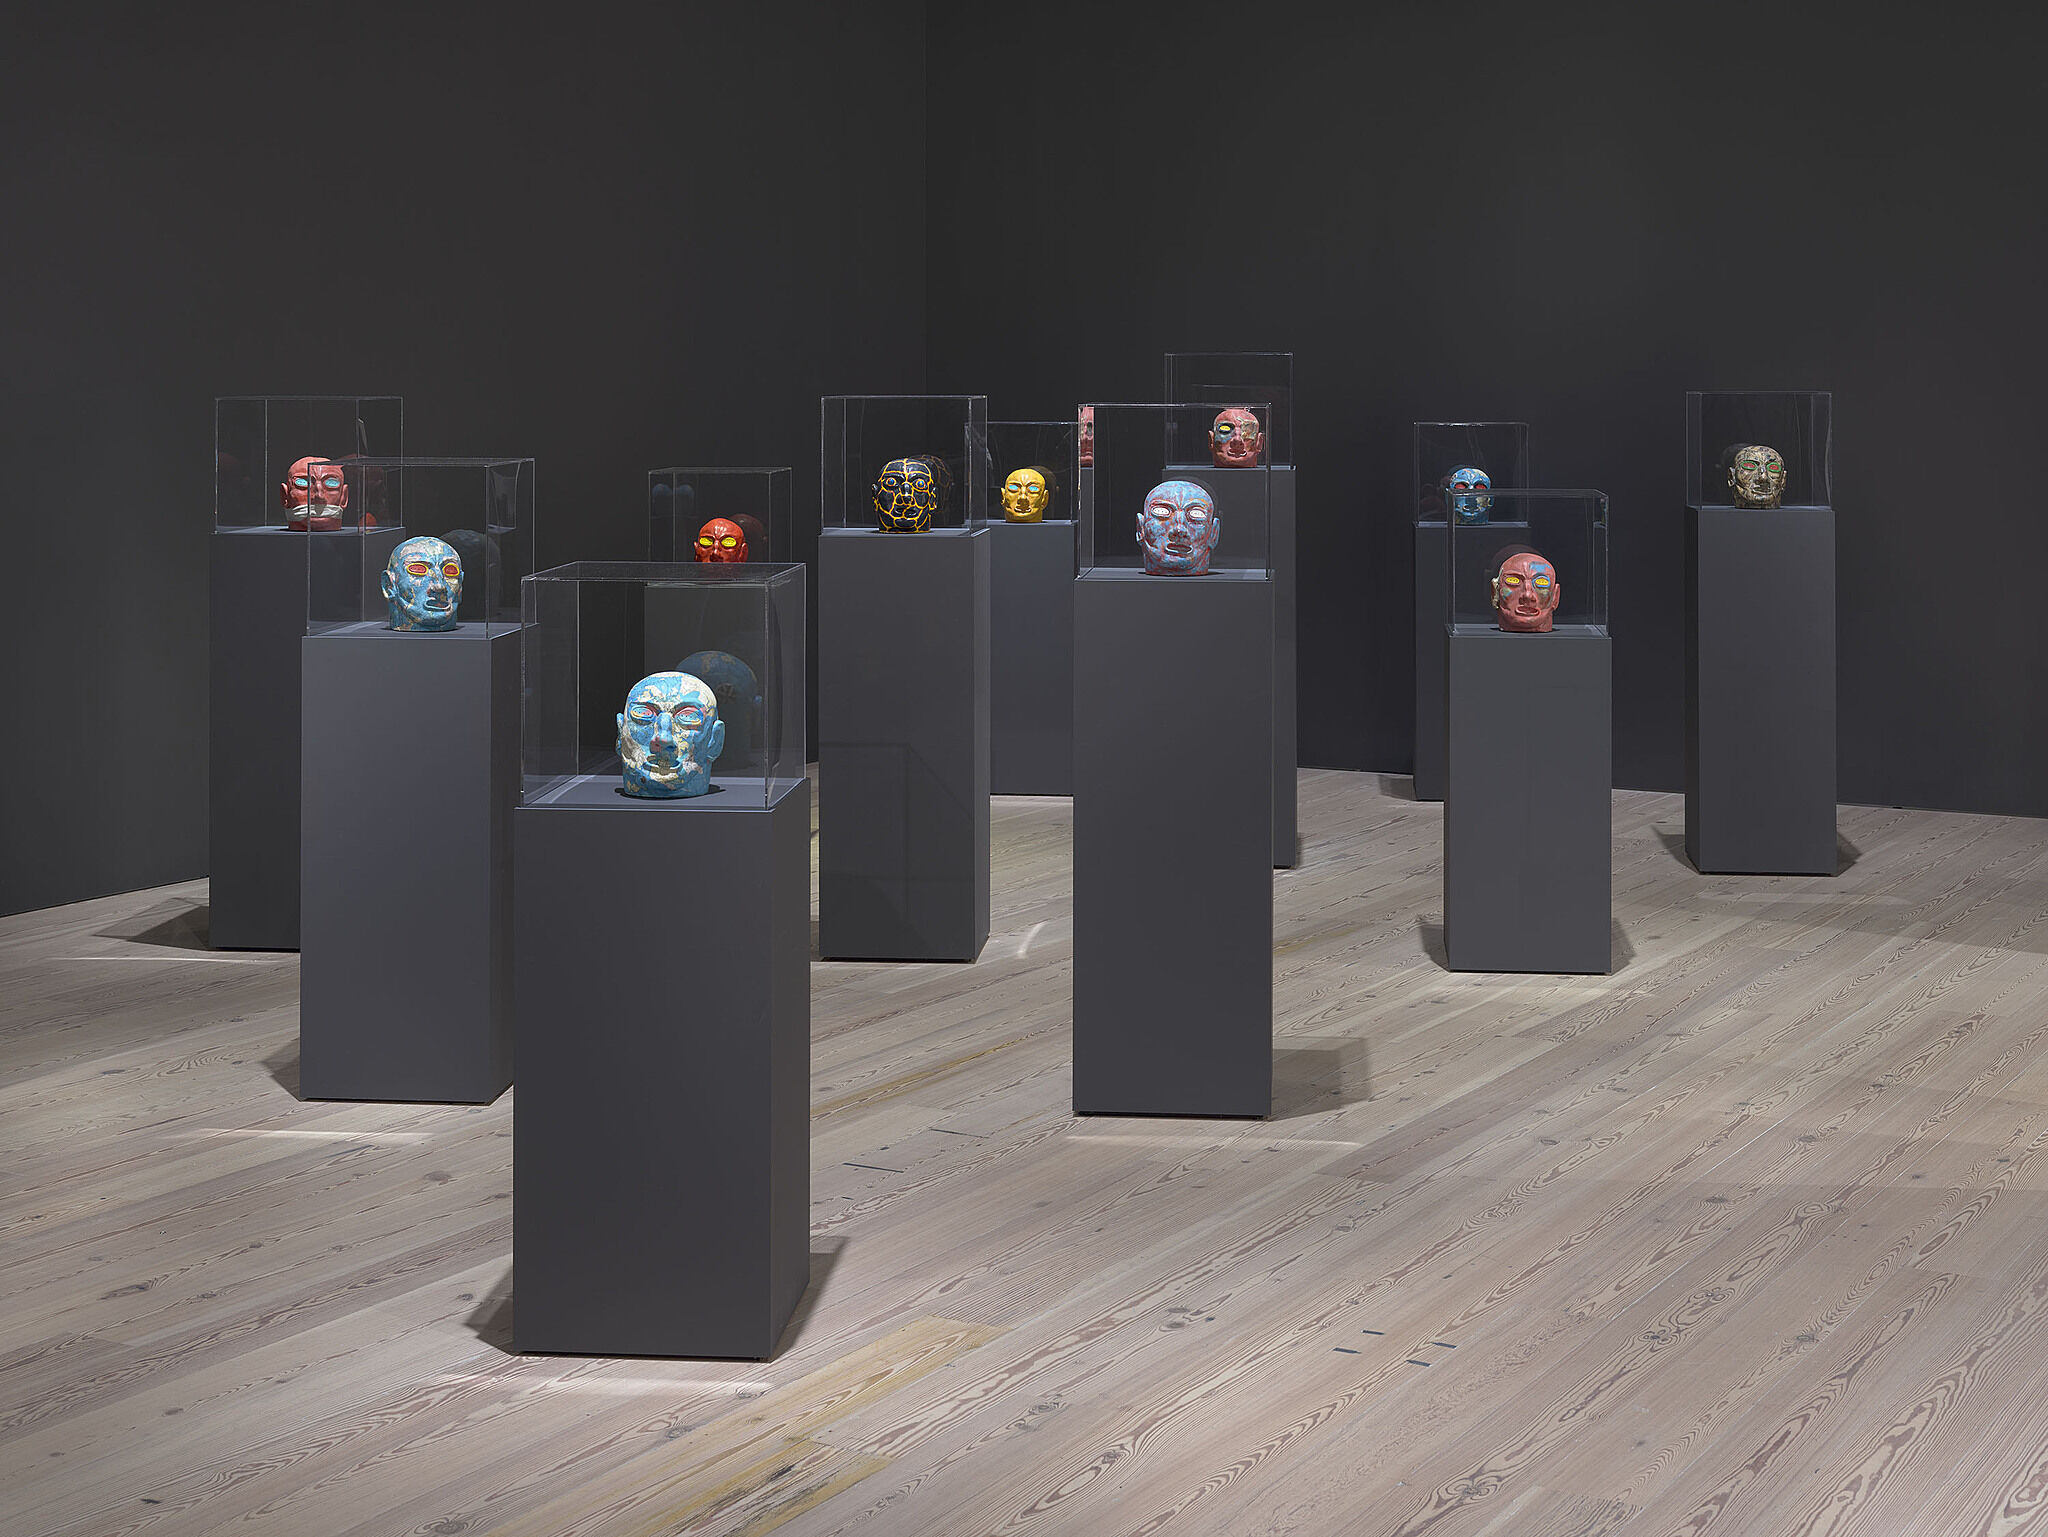 An image of the Whitney galleries with various plinths with artwork